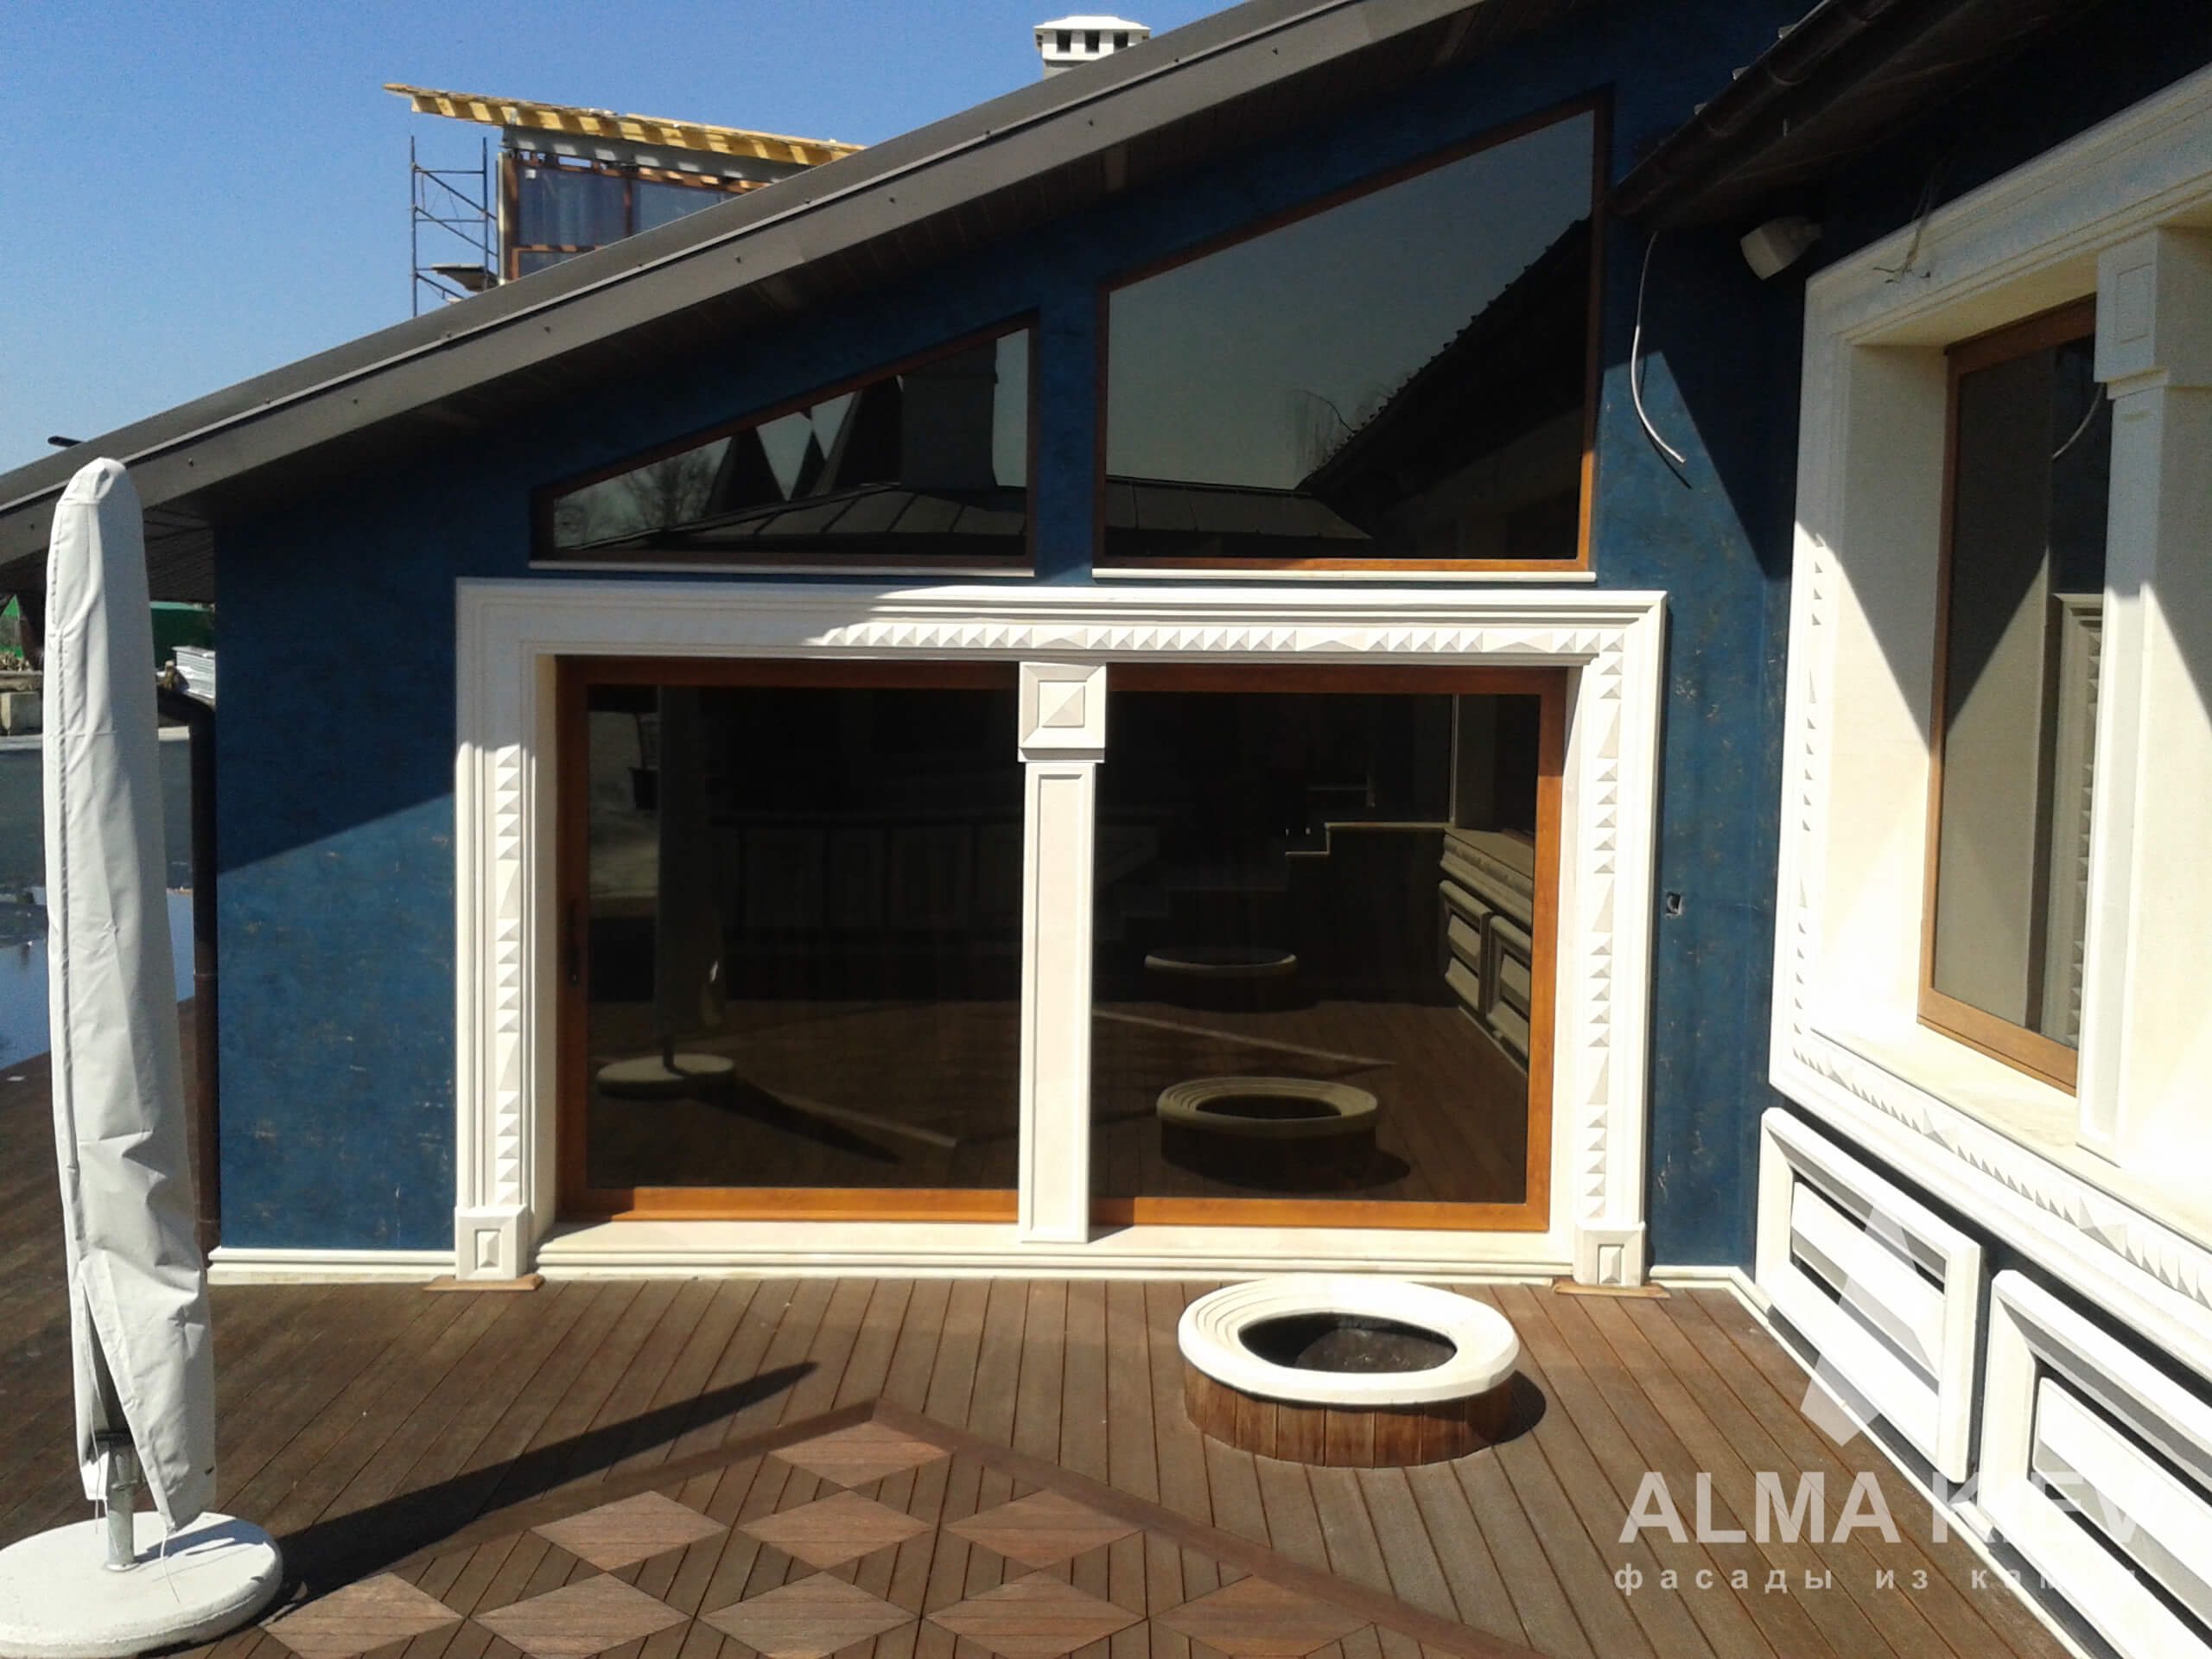 Framing windows and doors | Alma kiev